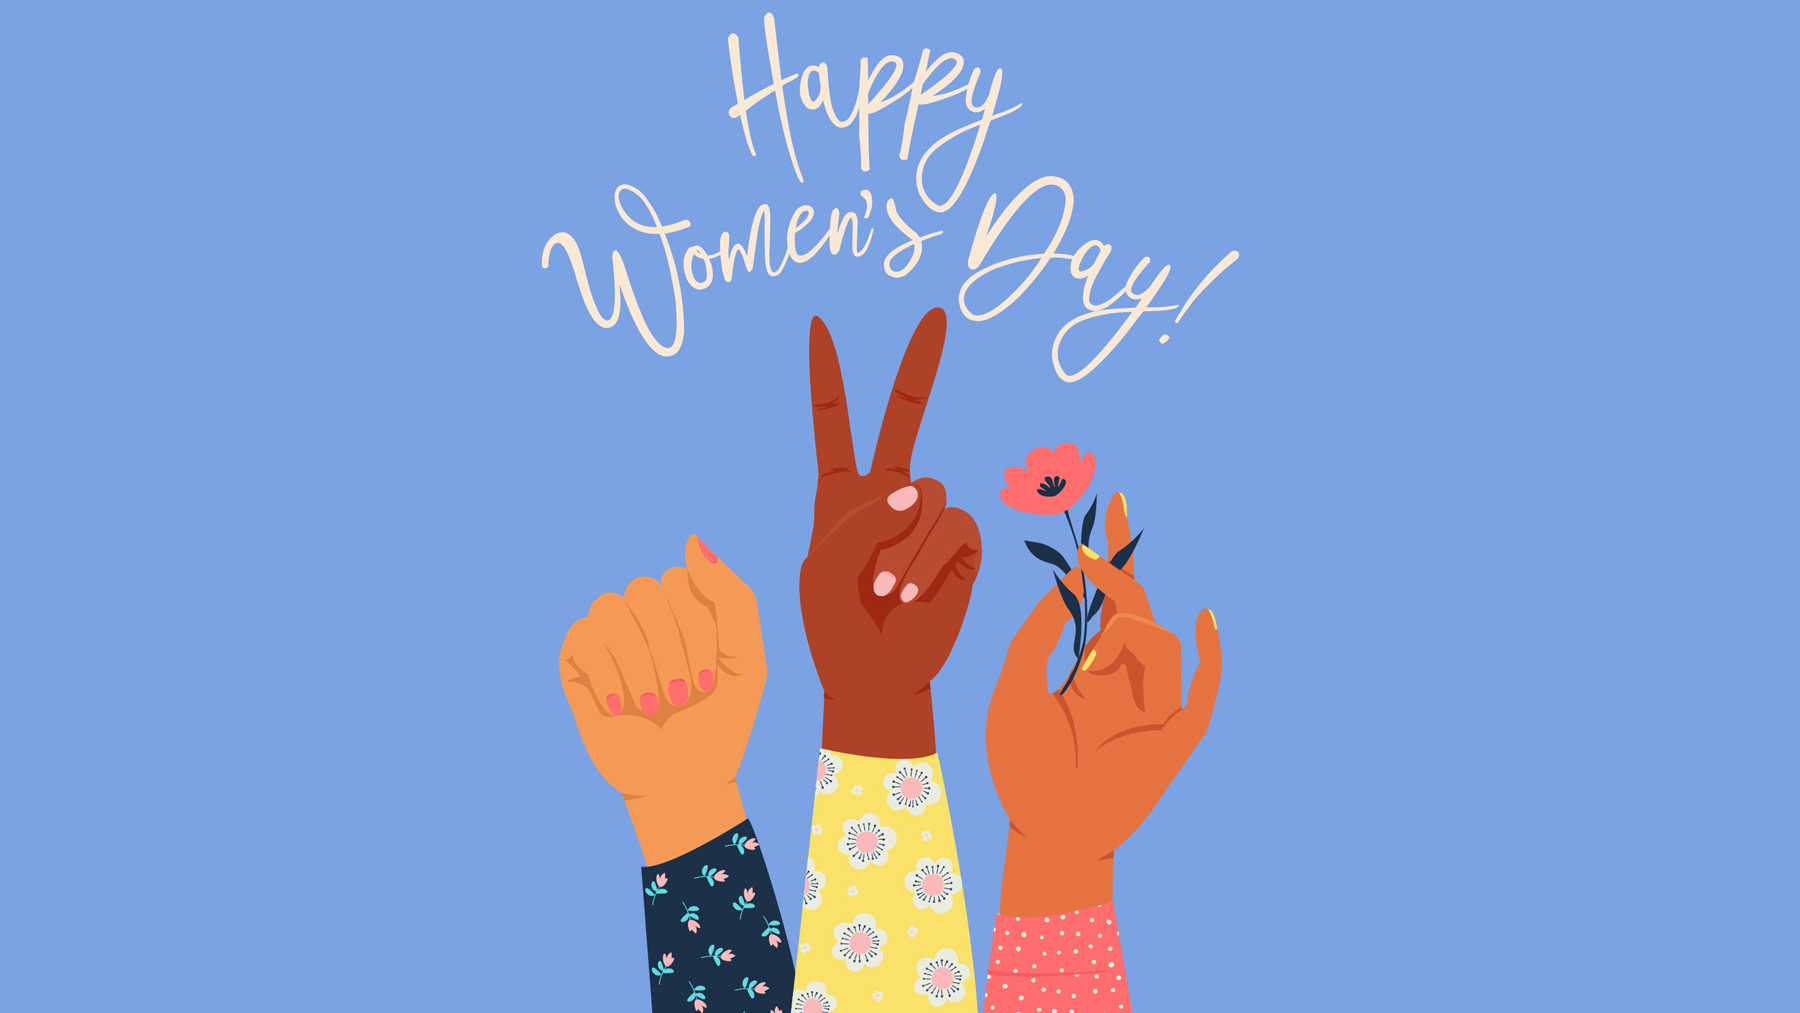 International Women's Day 2020: Women's Day history, hashtags, info, and more